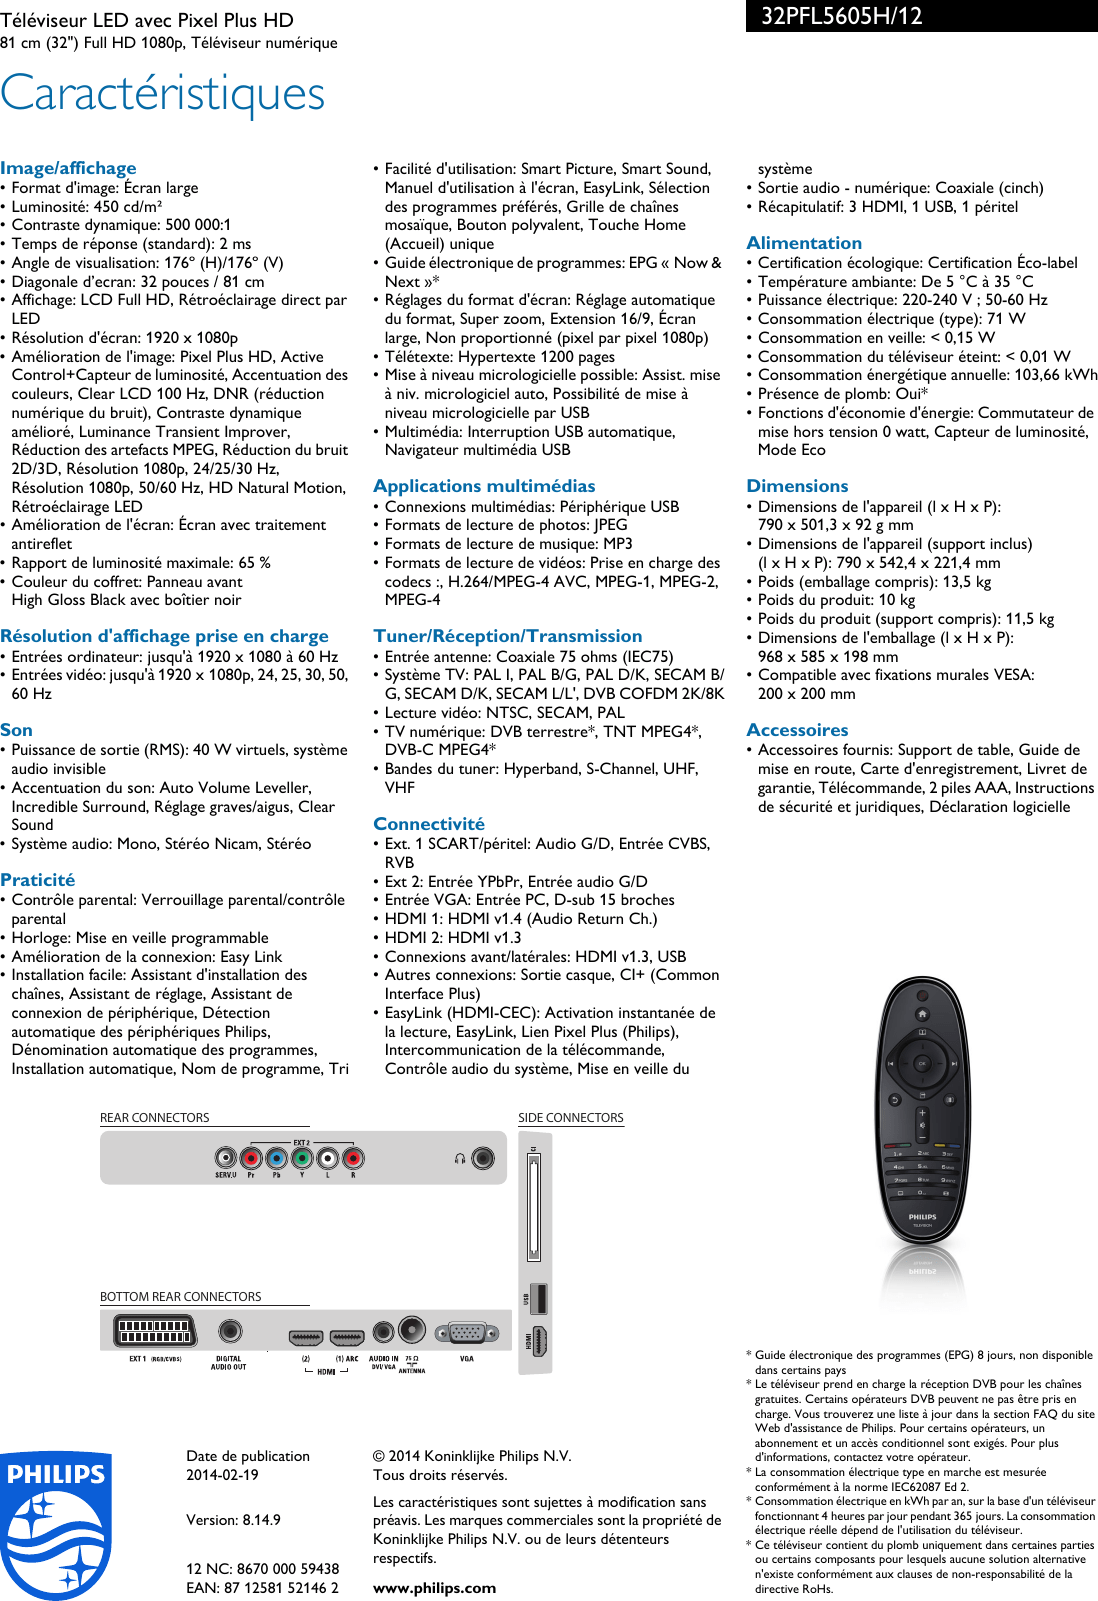 Philips 32PFL5605H/12 Leaflet 32PFL5605H_12 Released